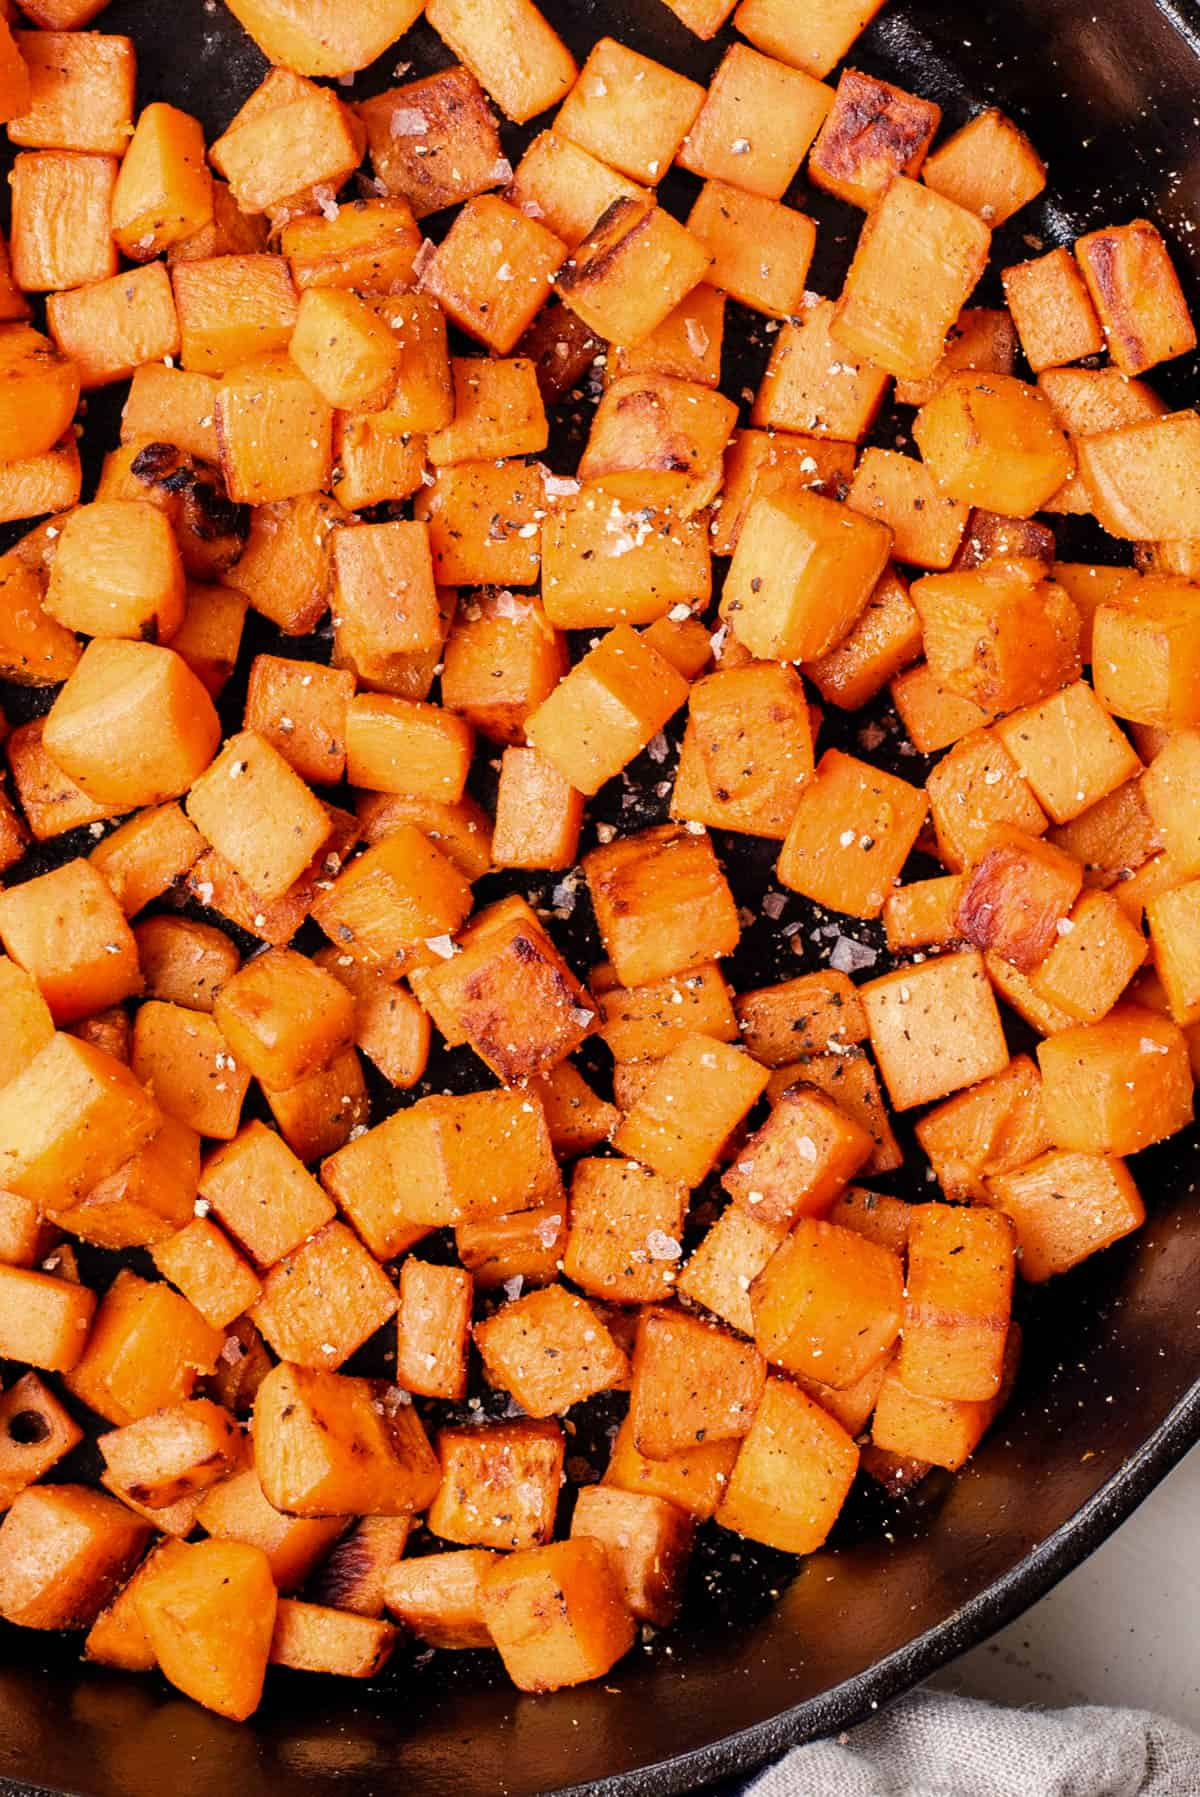 a skillet with sauteed sweet potatoes